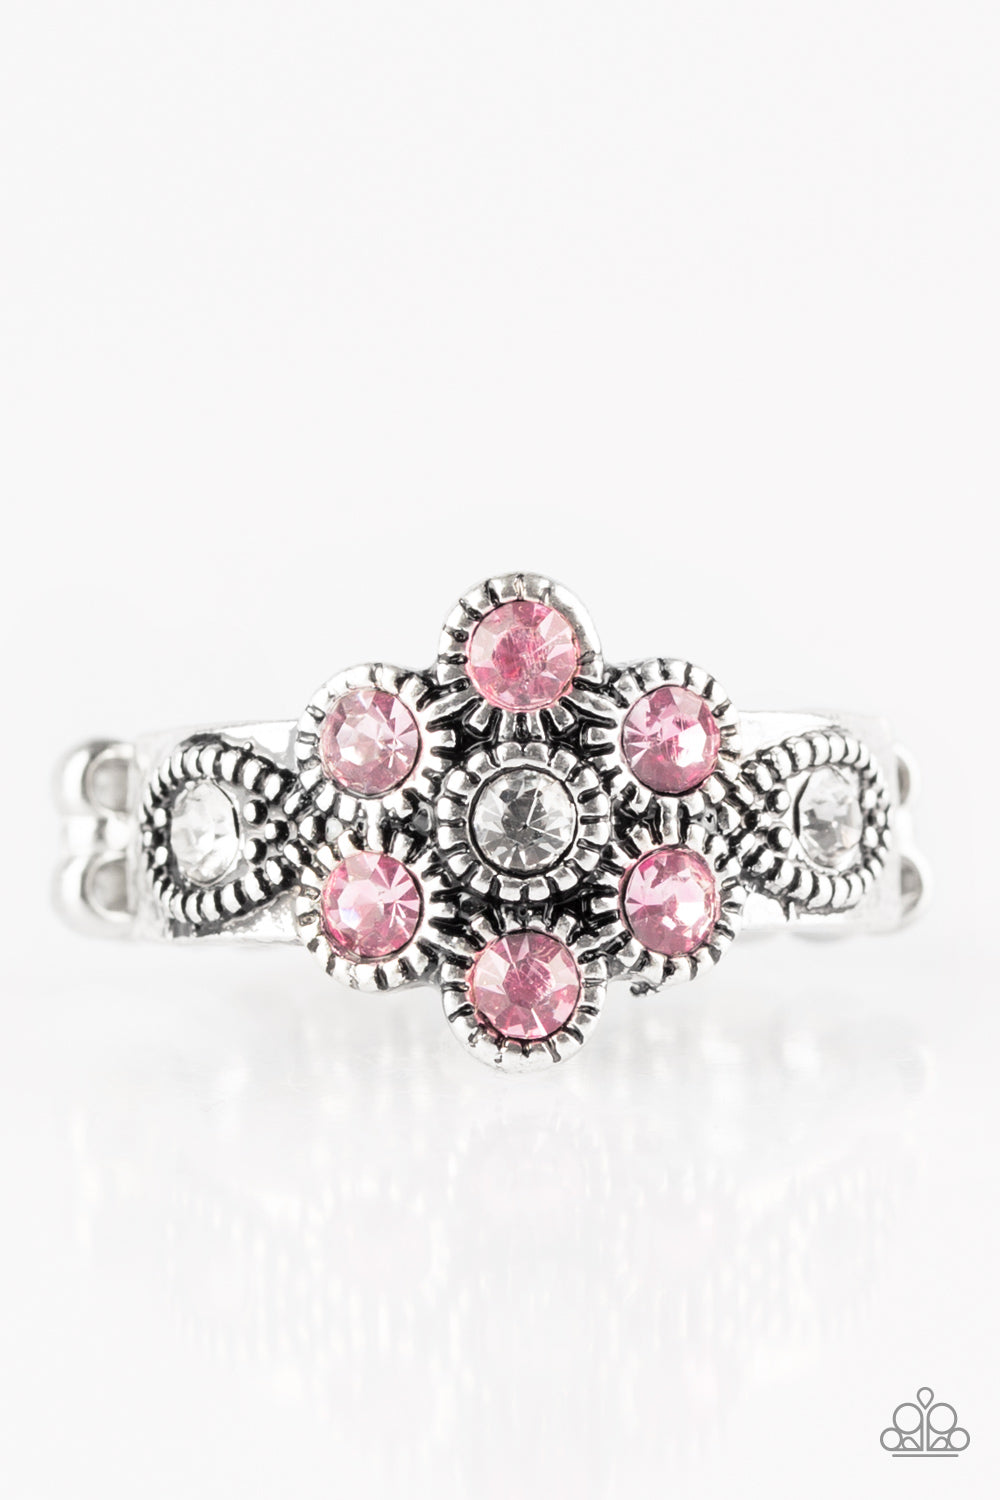 Paparazzi Accessories - Garland Glamour - Pink Ring - JMJ Jewelry Collection